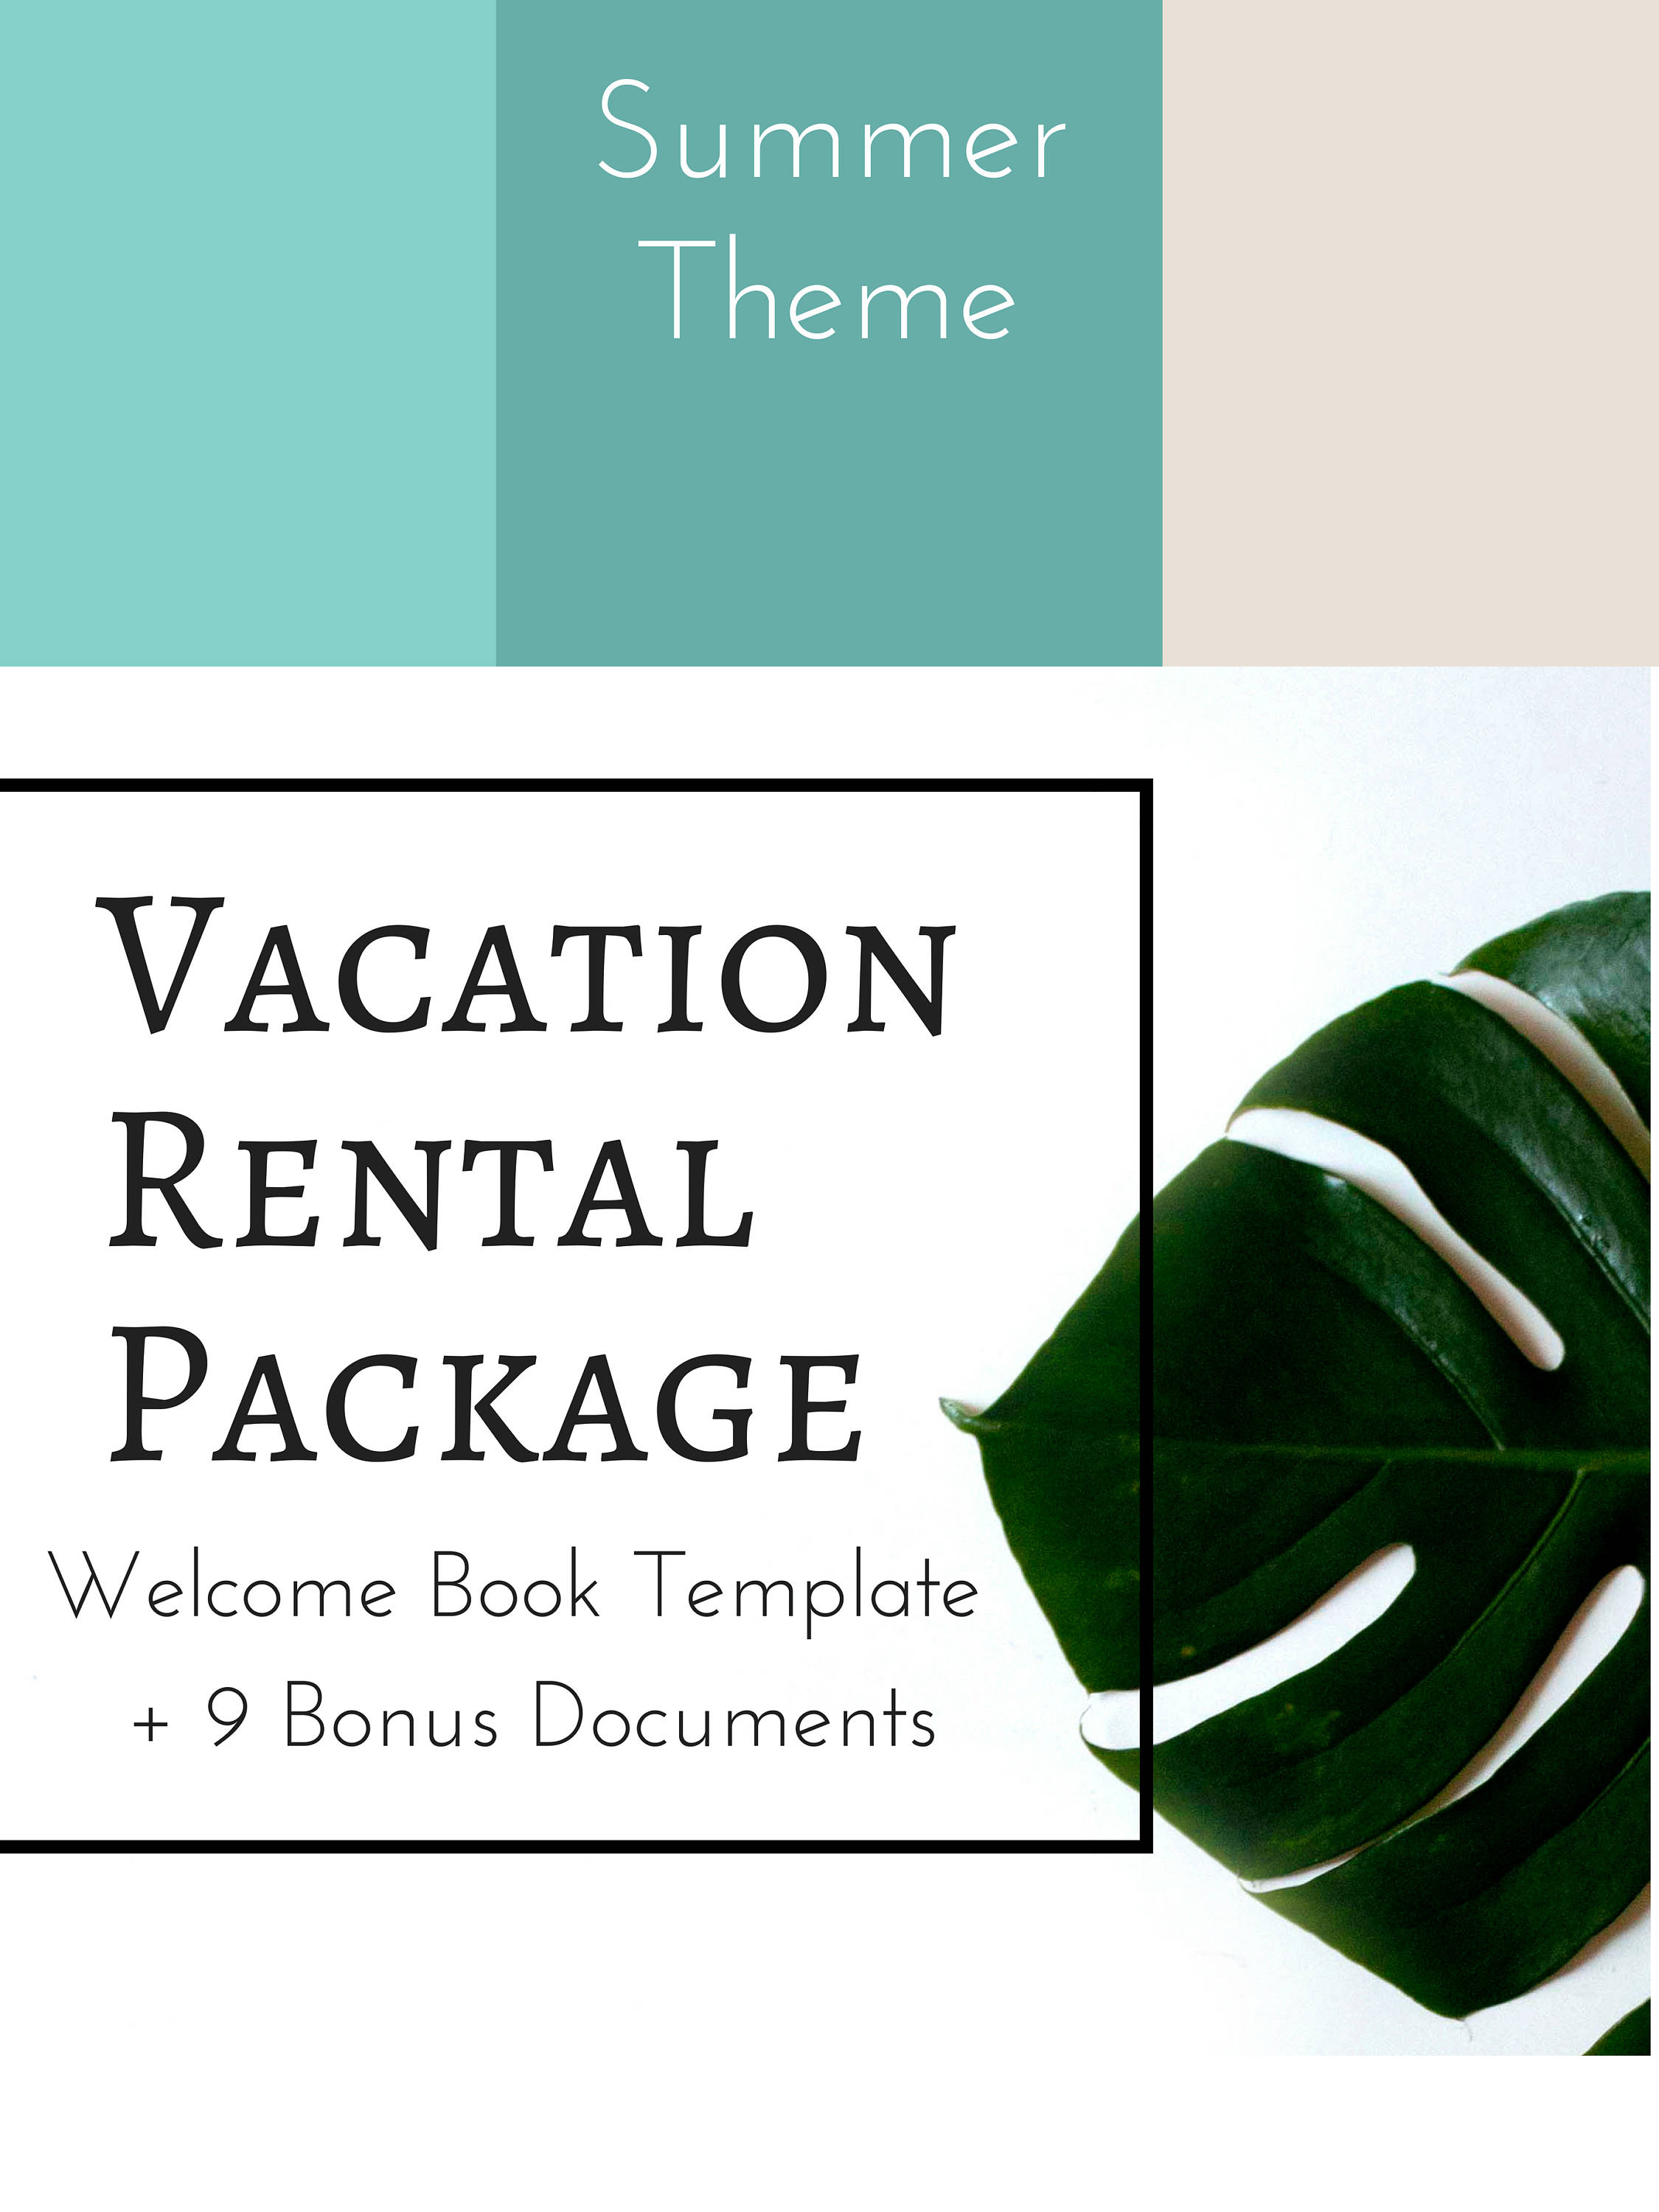 10 Item Package Summer Colors Vacation Rental Welcome Book